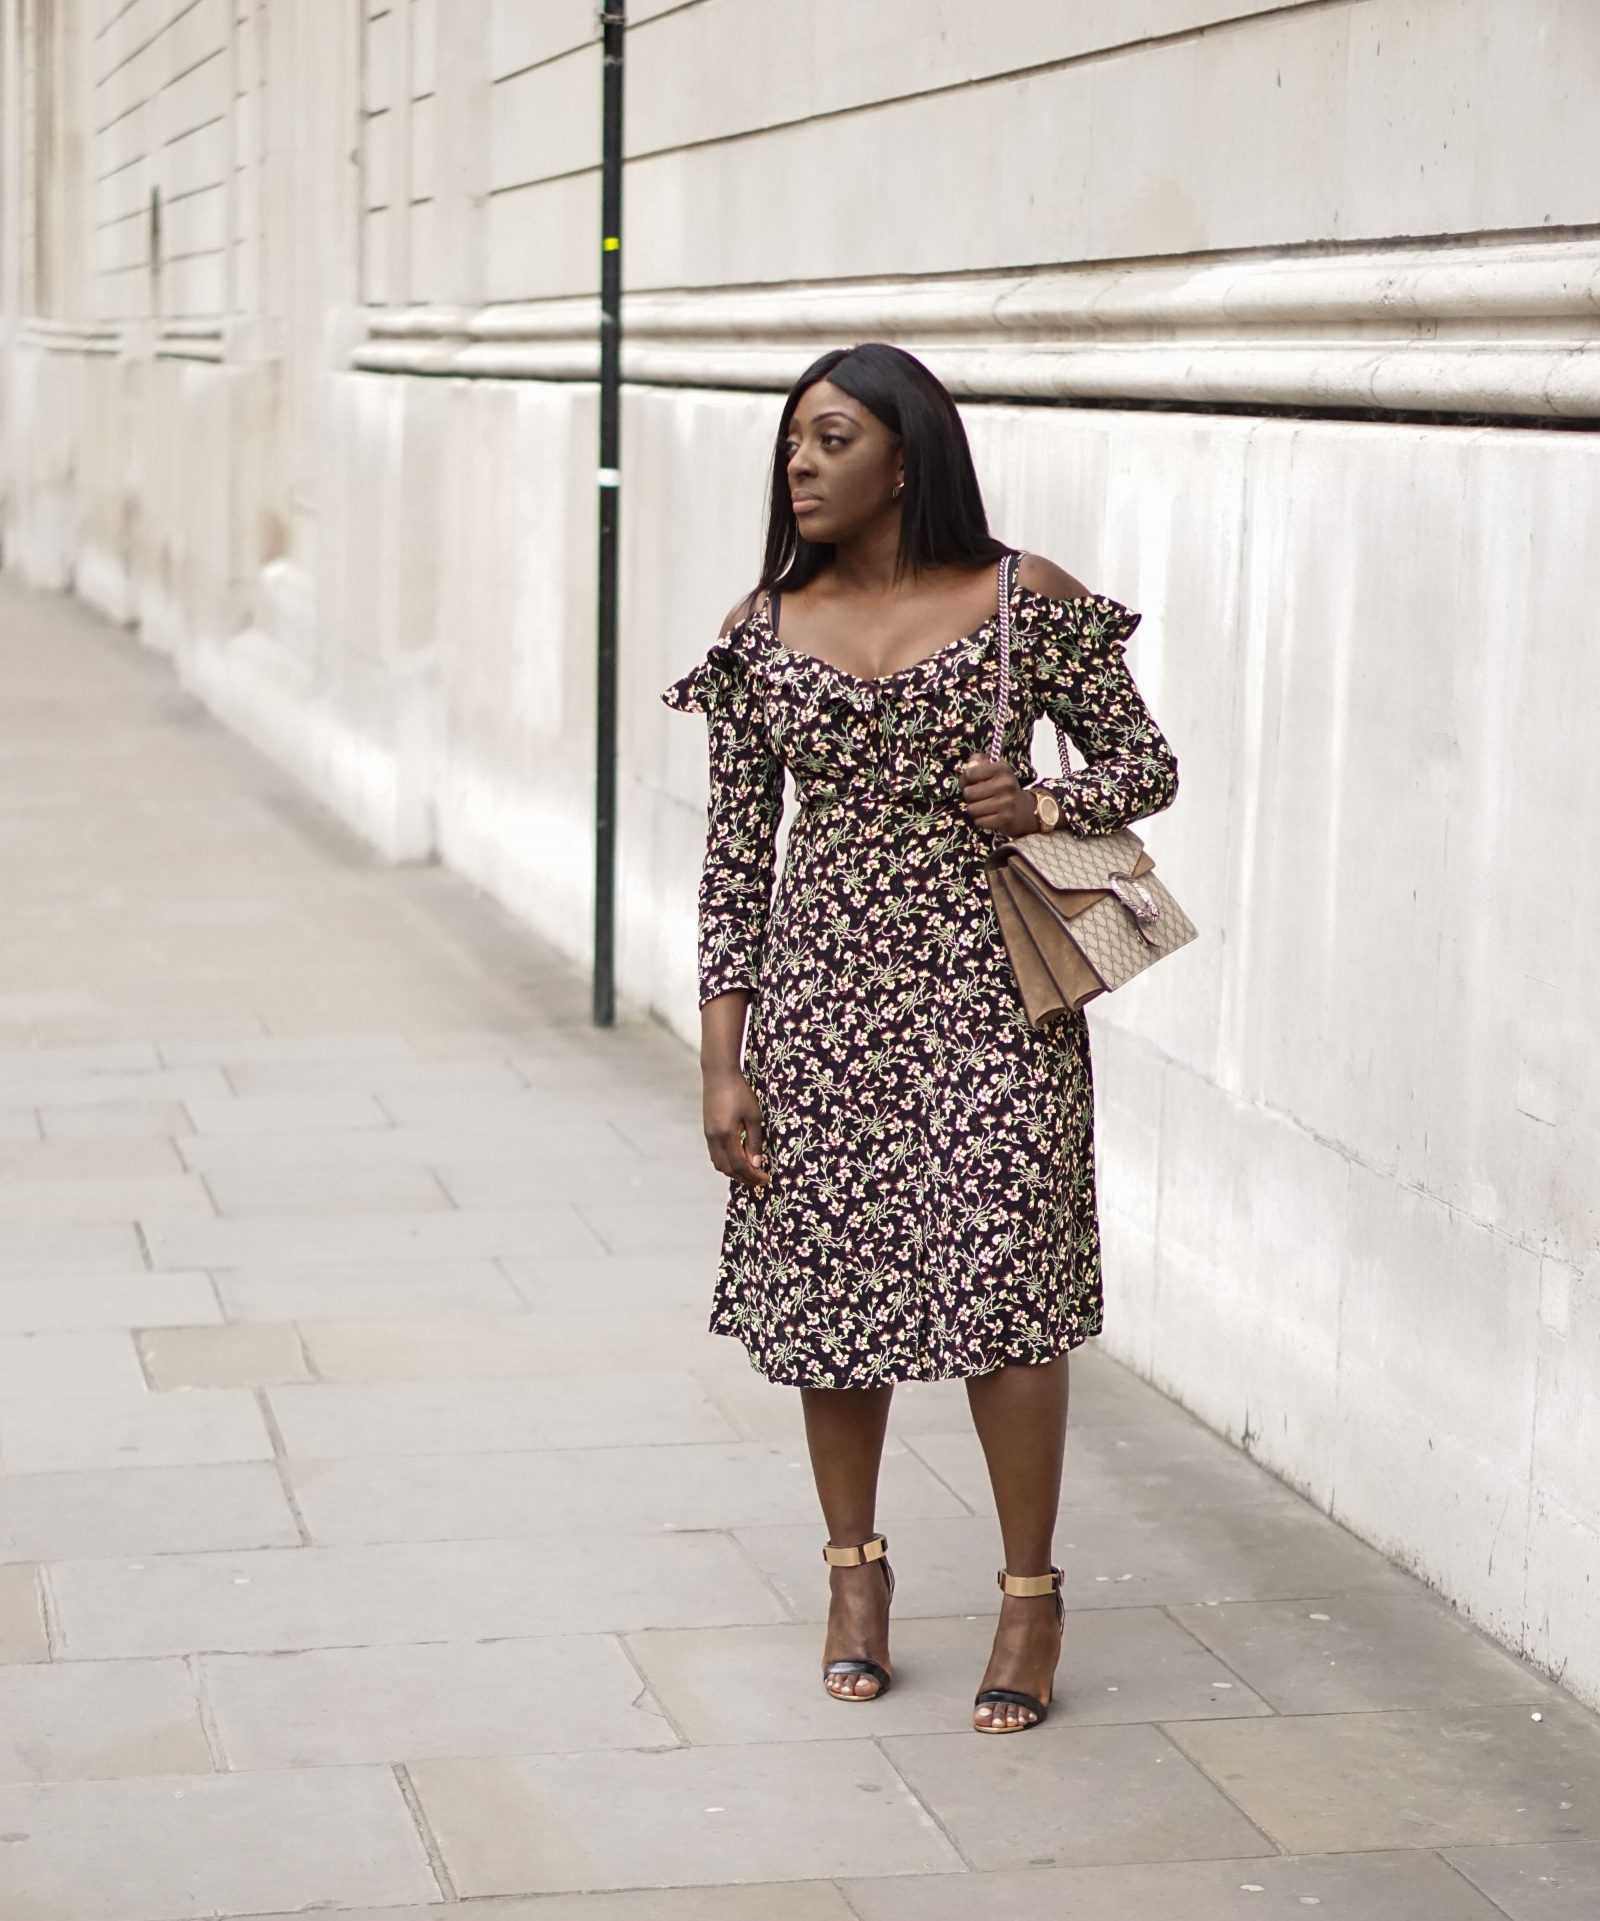 Midi Dresses in October 1 - Style and the Sass